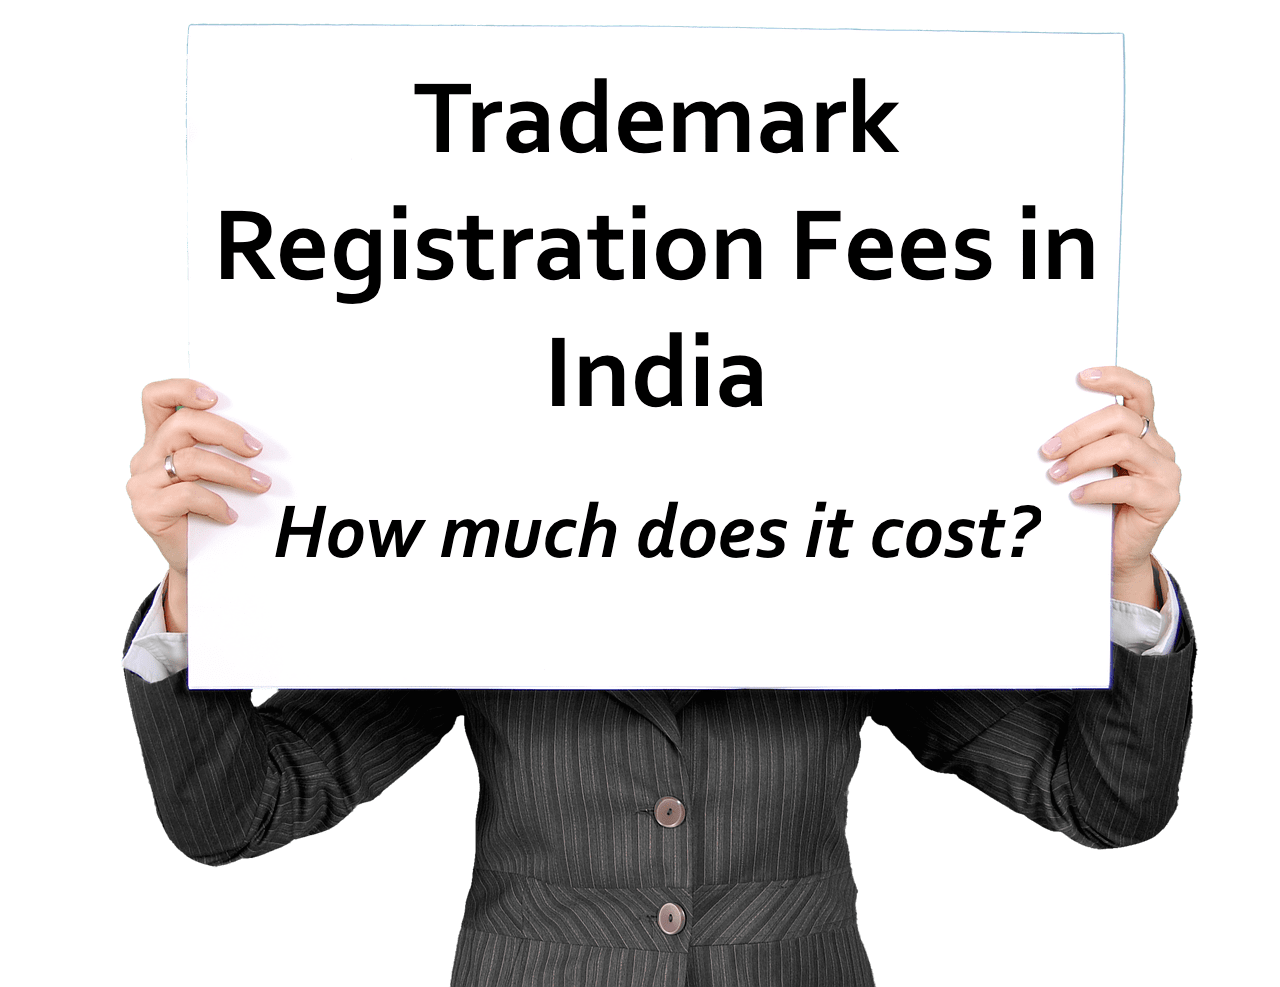 Trademark Registration Cost in In India